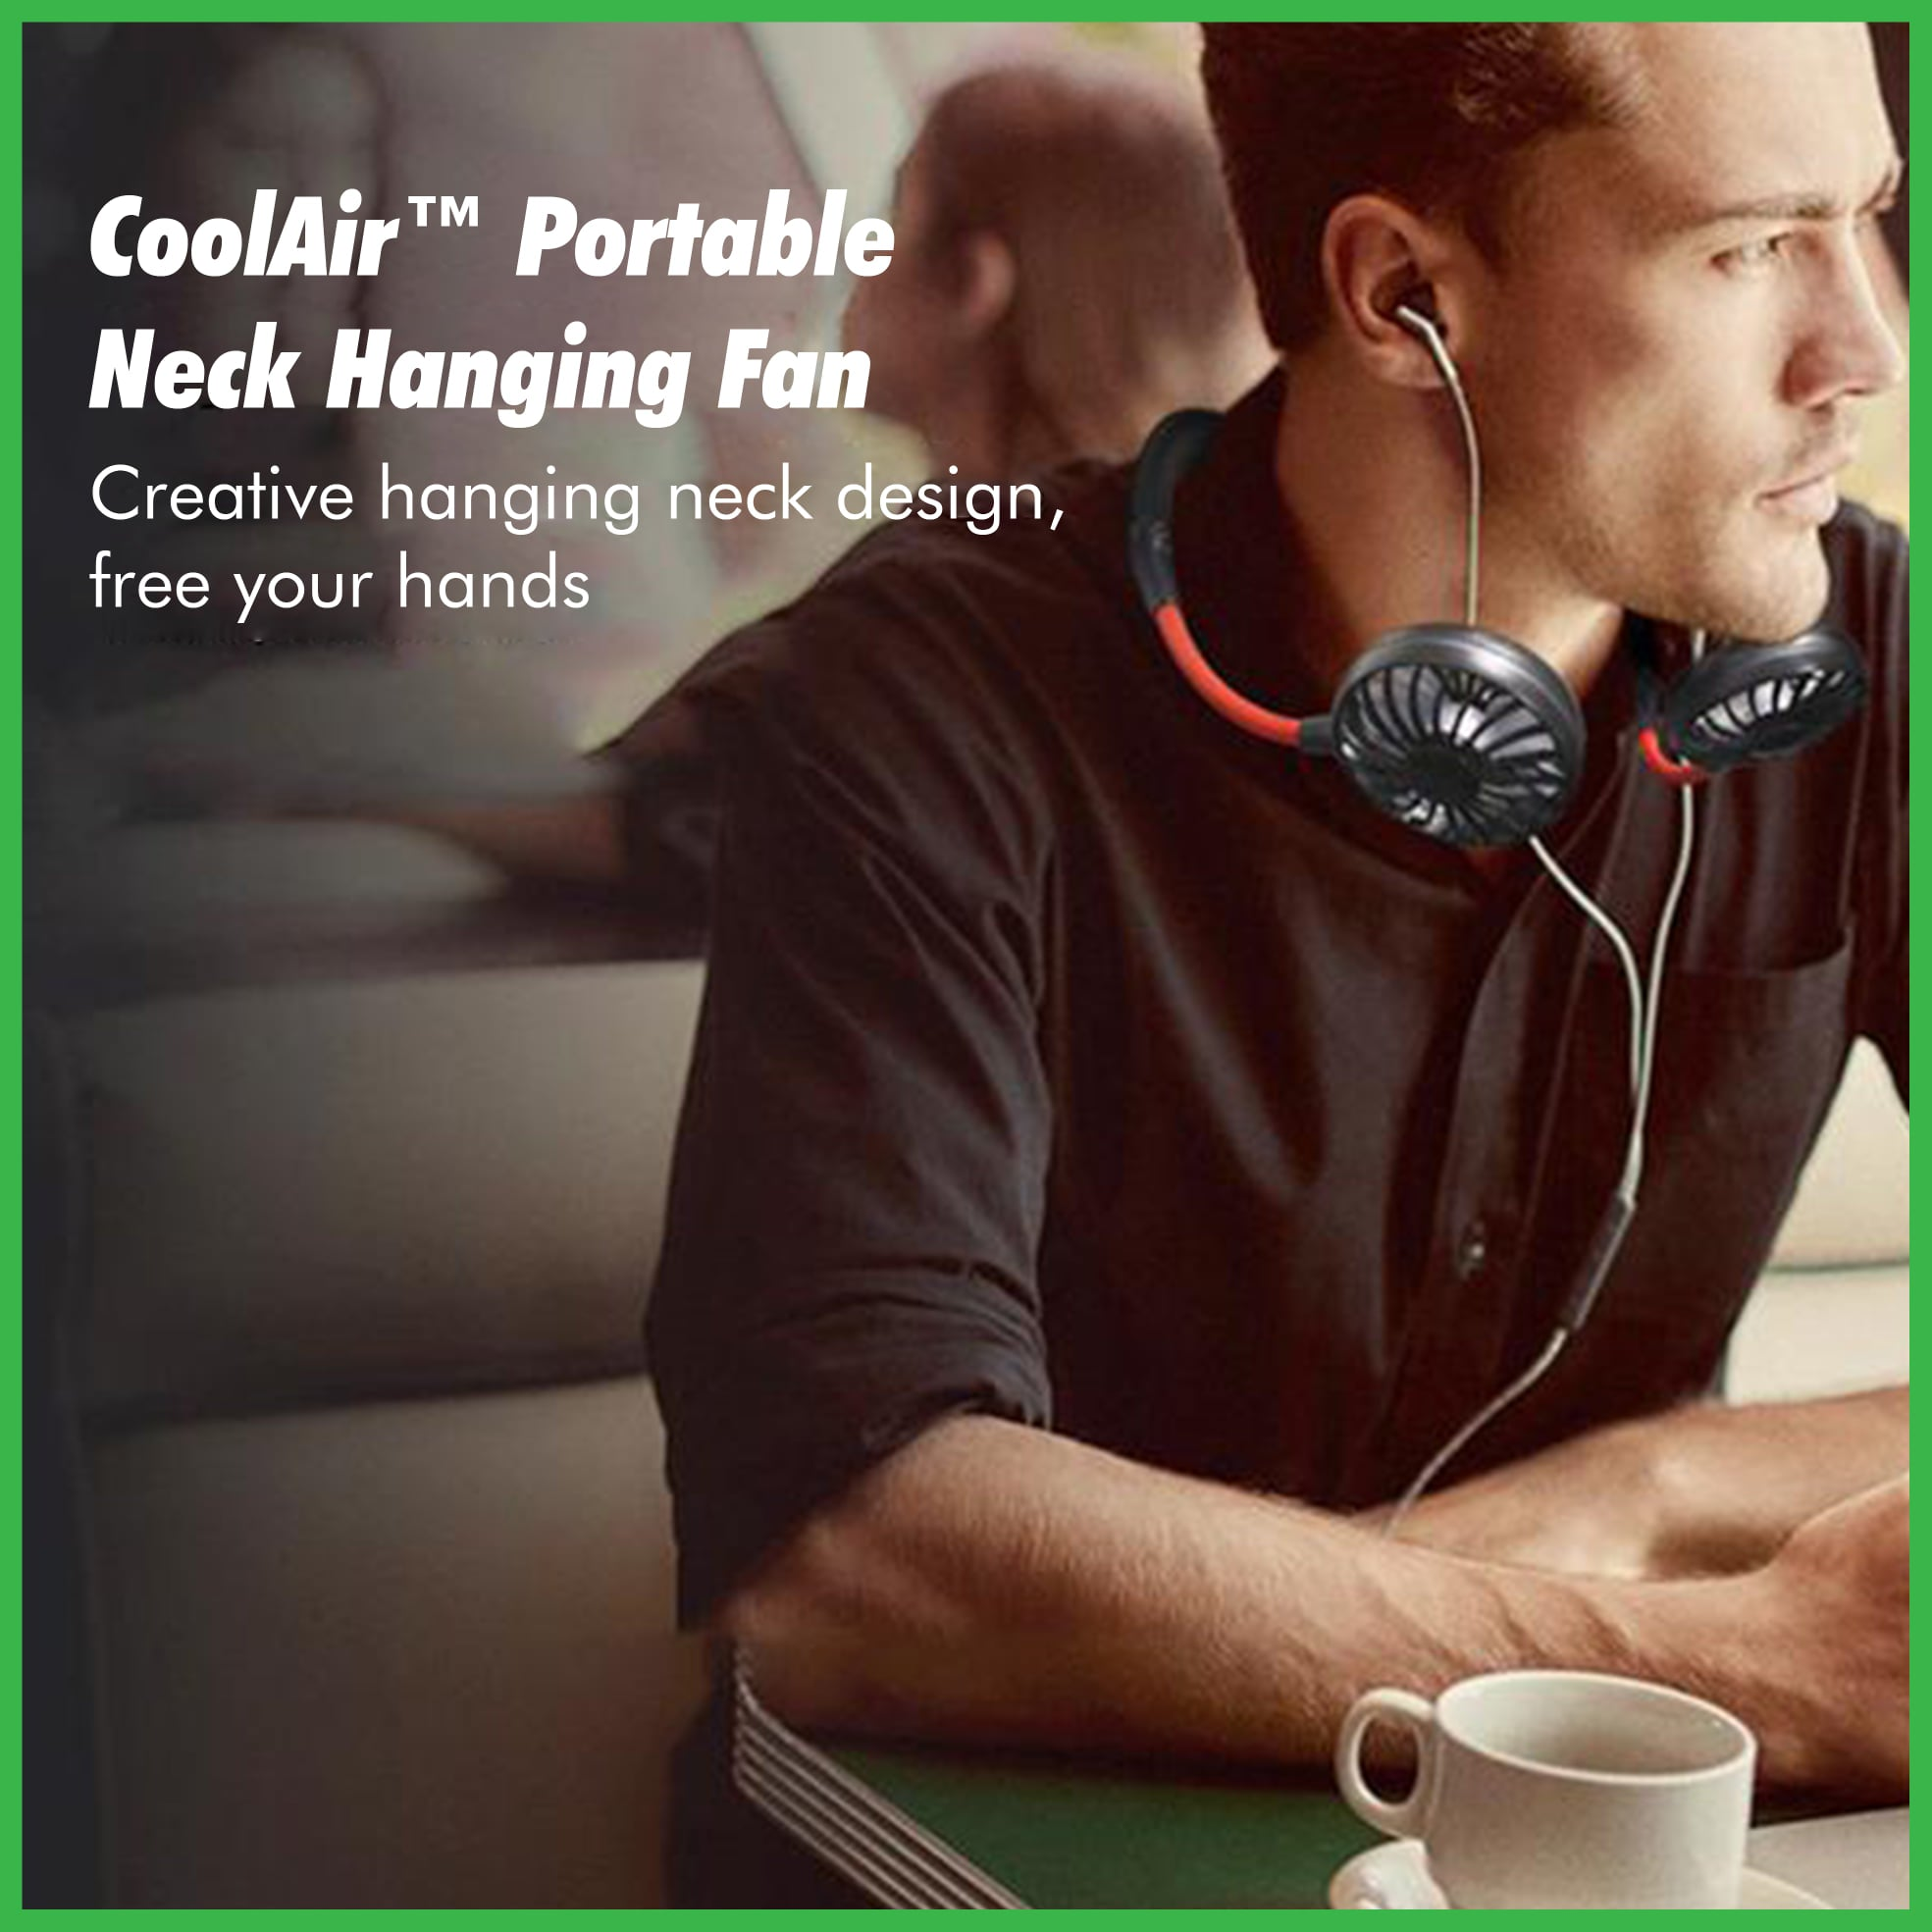 CoolAir™ Portable Neck Hanging Fan